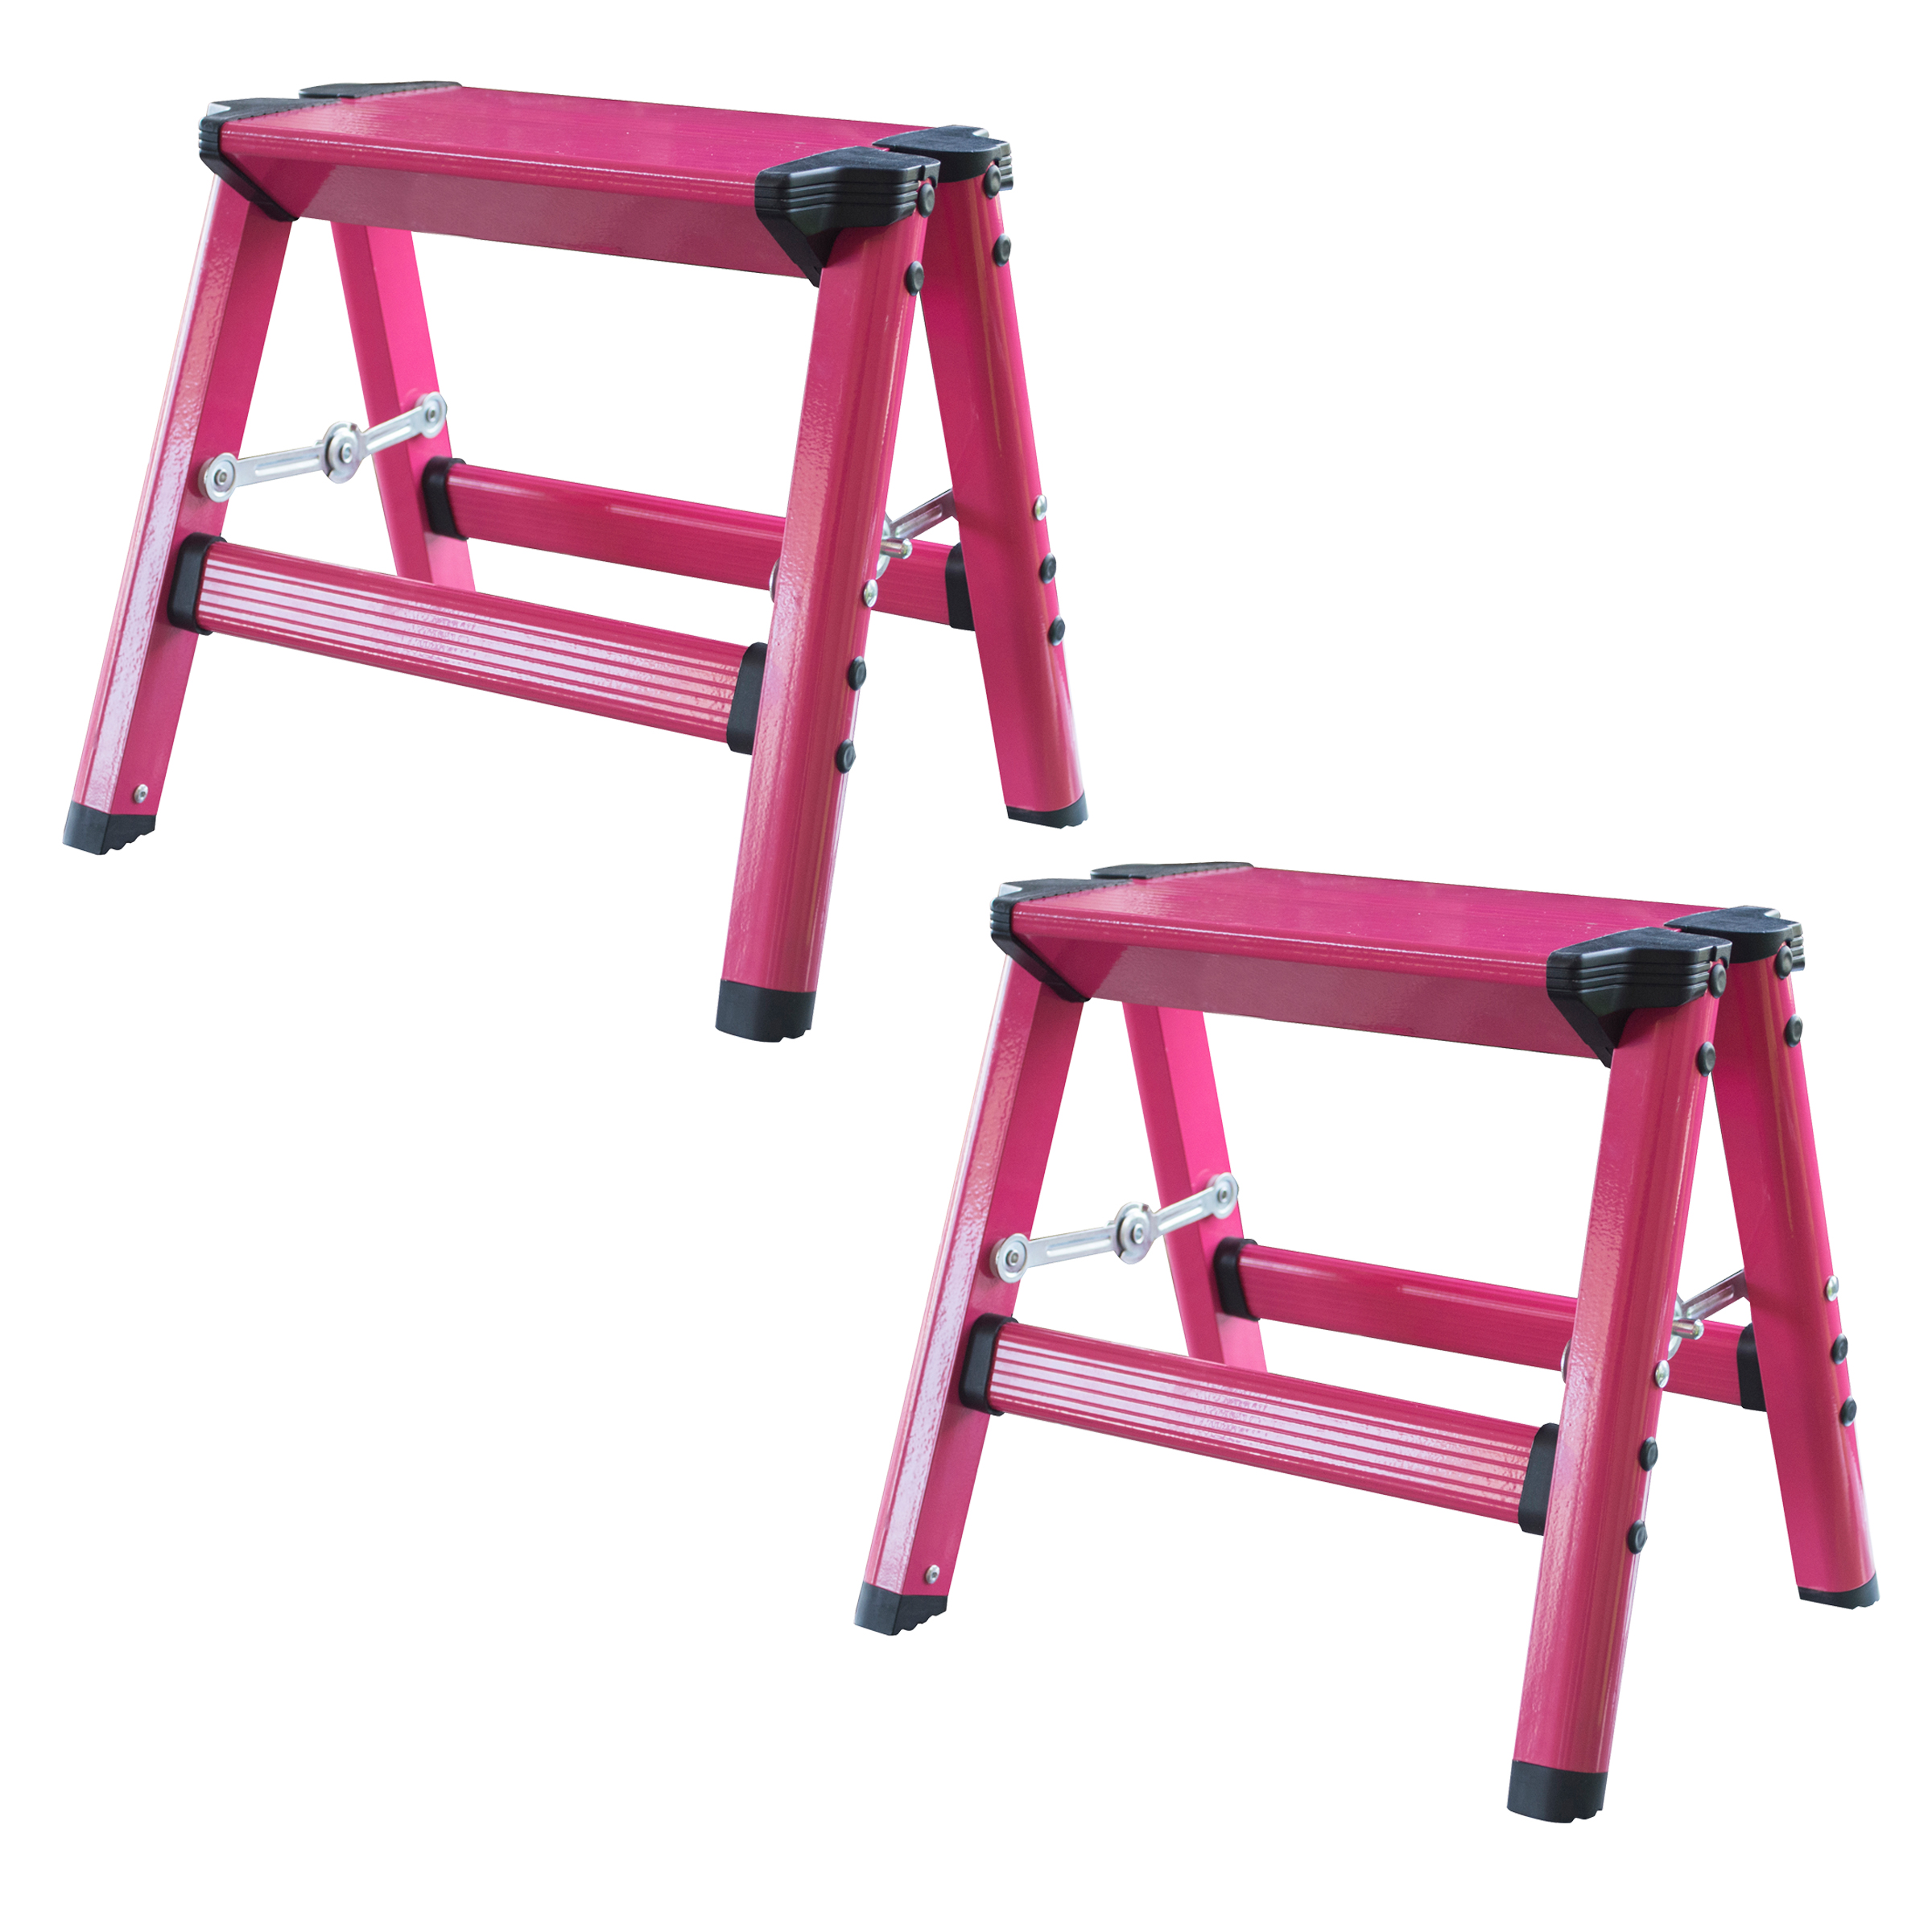 AmeriHome Lightweight Single Step Aluminum Step Stool 2 Piece Set - Bright Pink